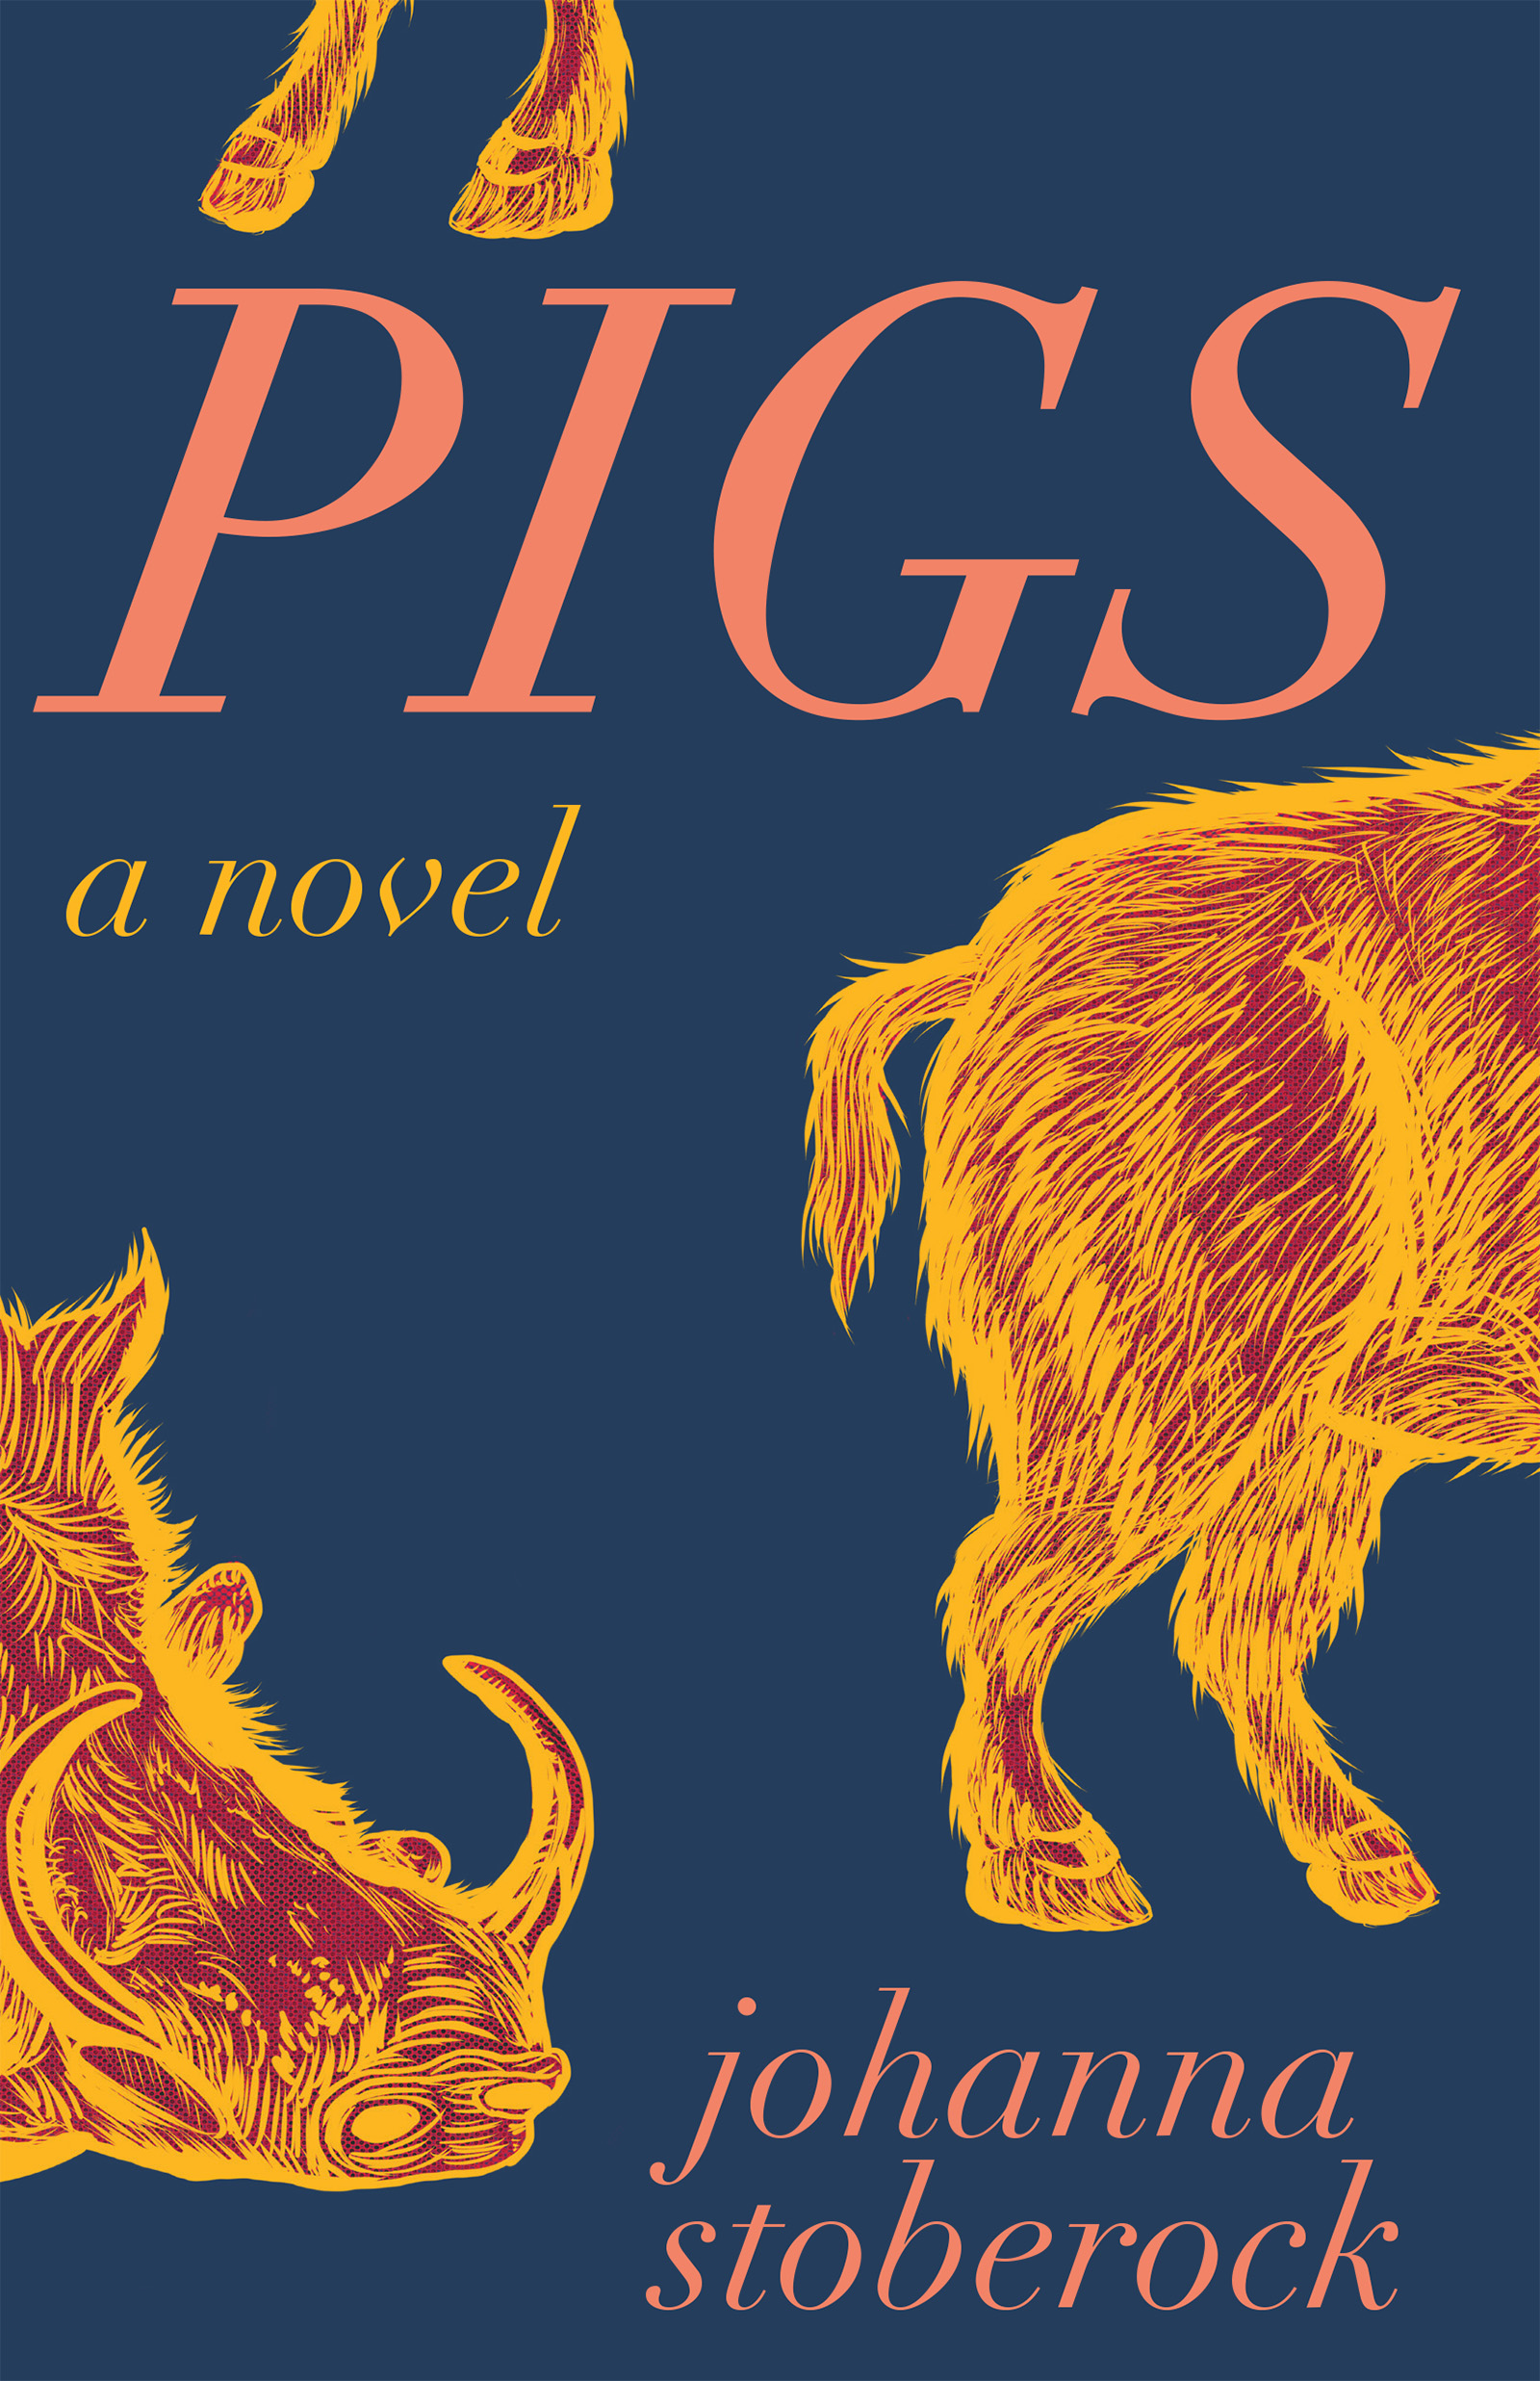 A blue background and a yellow graphic design of a large pig and pink script that reads Pigs a novel by Johanna Stoberock.